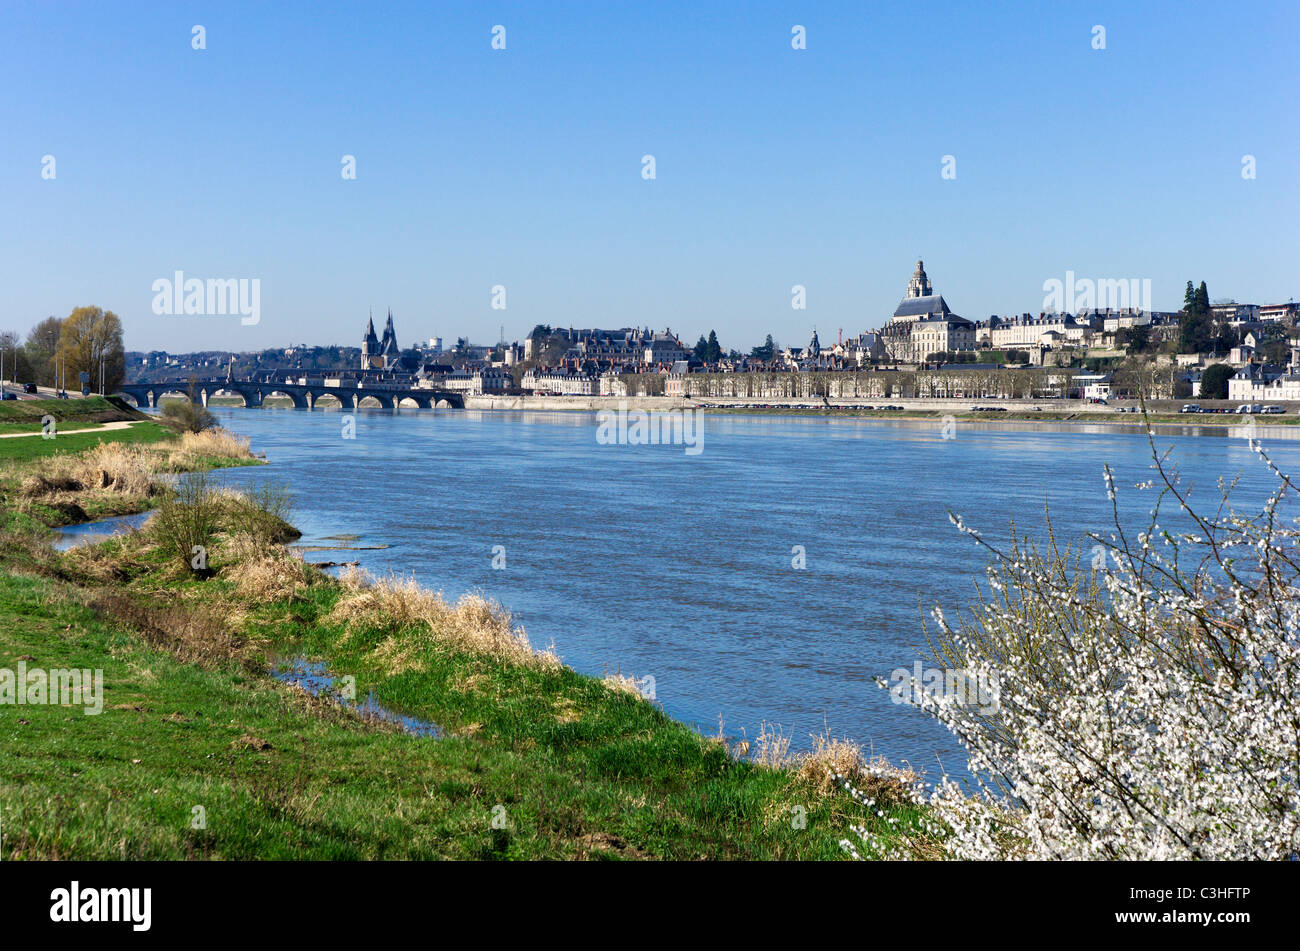 View of the old town from across the River Loire in the spring, Blois, Loire Valley, Touraine, France - Stock Image